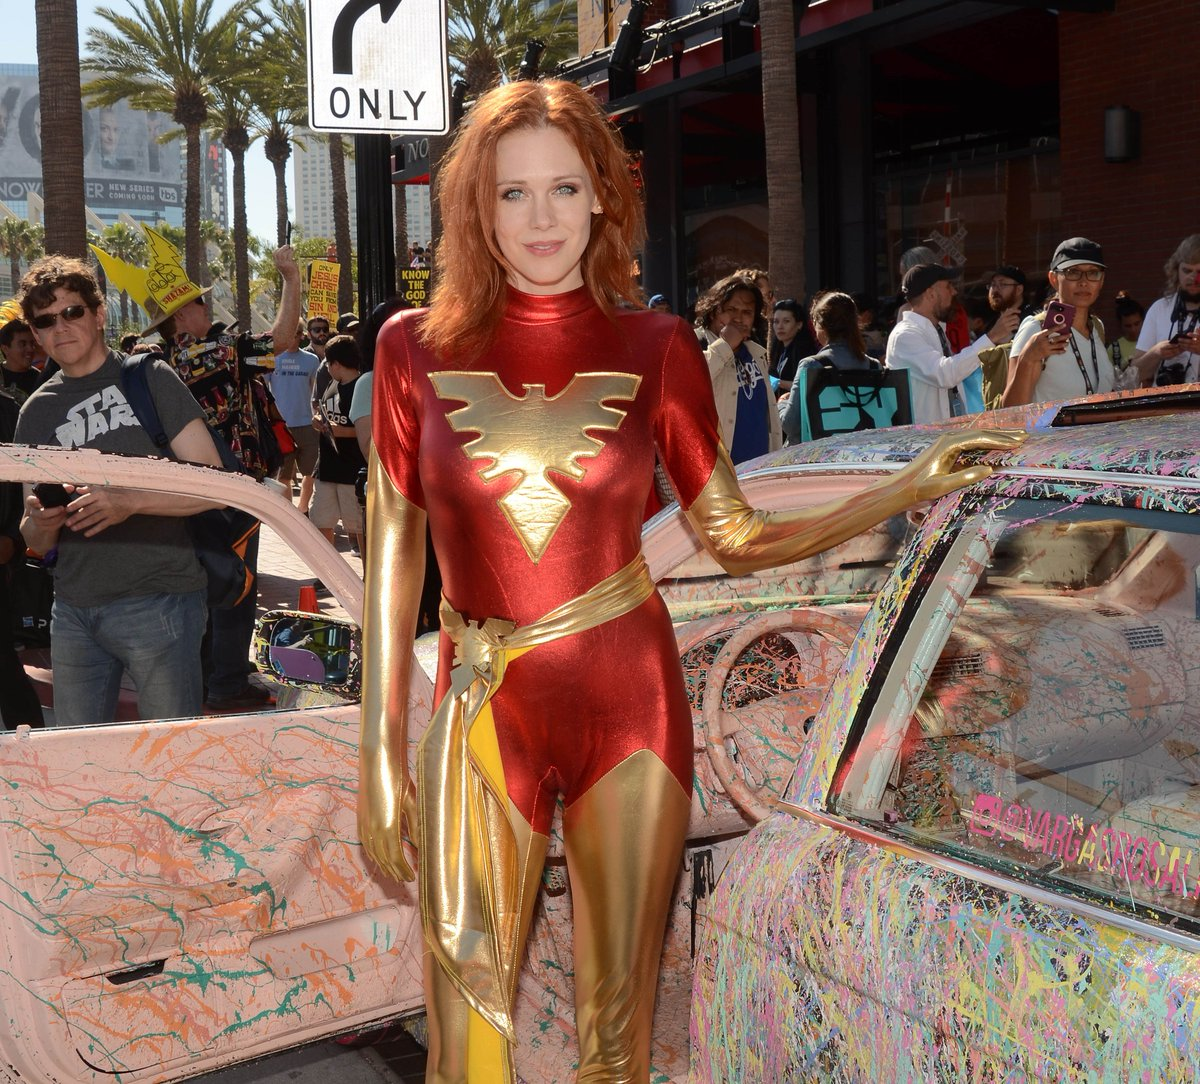 RT @egotastic: .@MaitlandWard is the sexiest cosplayer at @Comic_Con. Agreed or Agreed? ????  https://t.co/48ktksq2qe https://t.co/IfyPUCcBuq